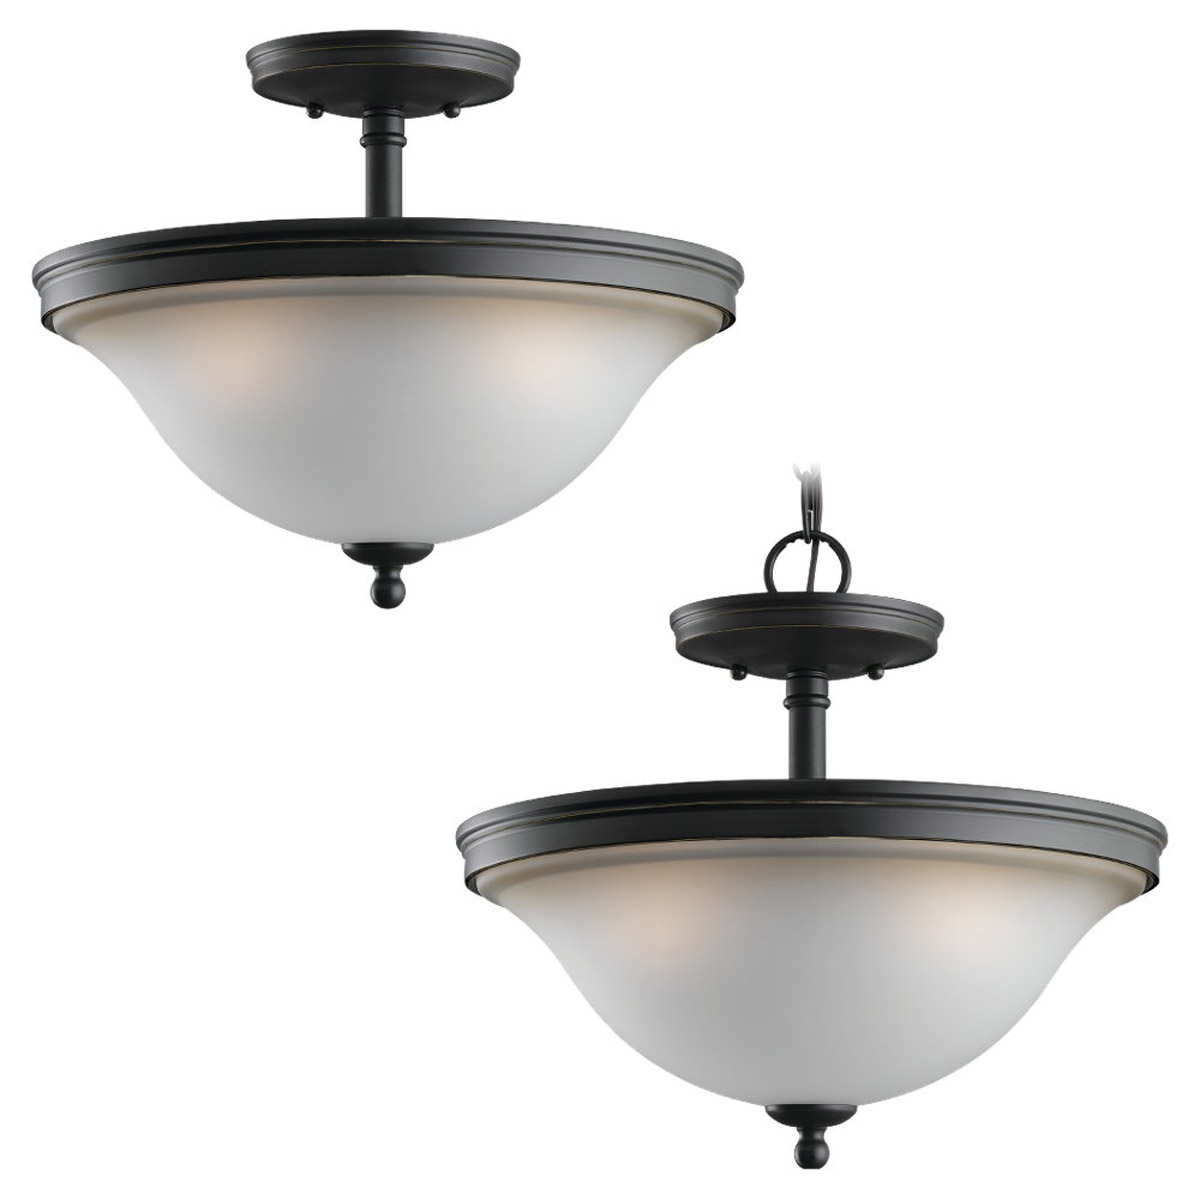 Sea Gull Lighting Gladstone 3 Light Semi-Flush Mount in Heirloom Bronze 77850-782